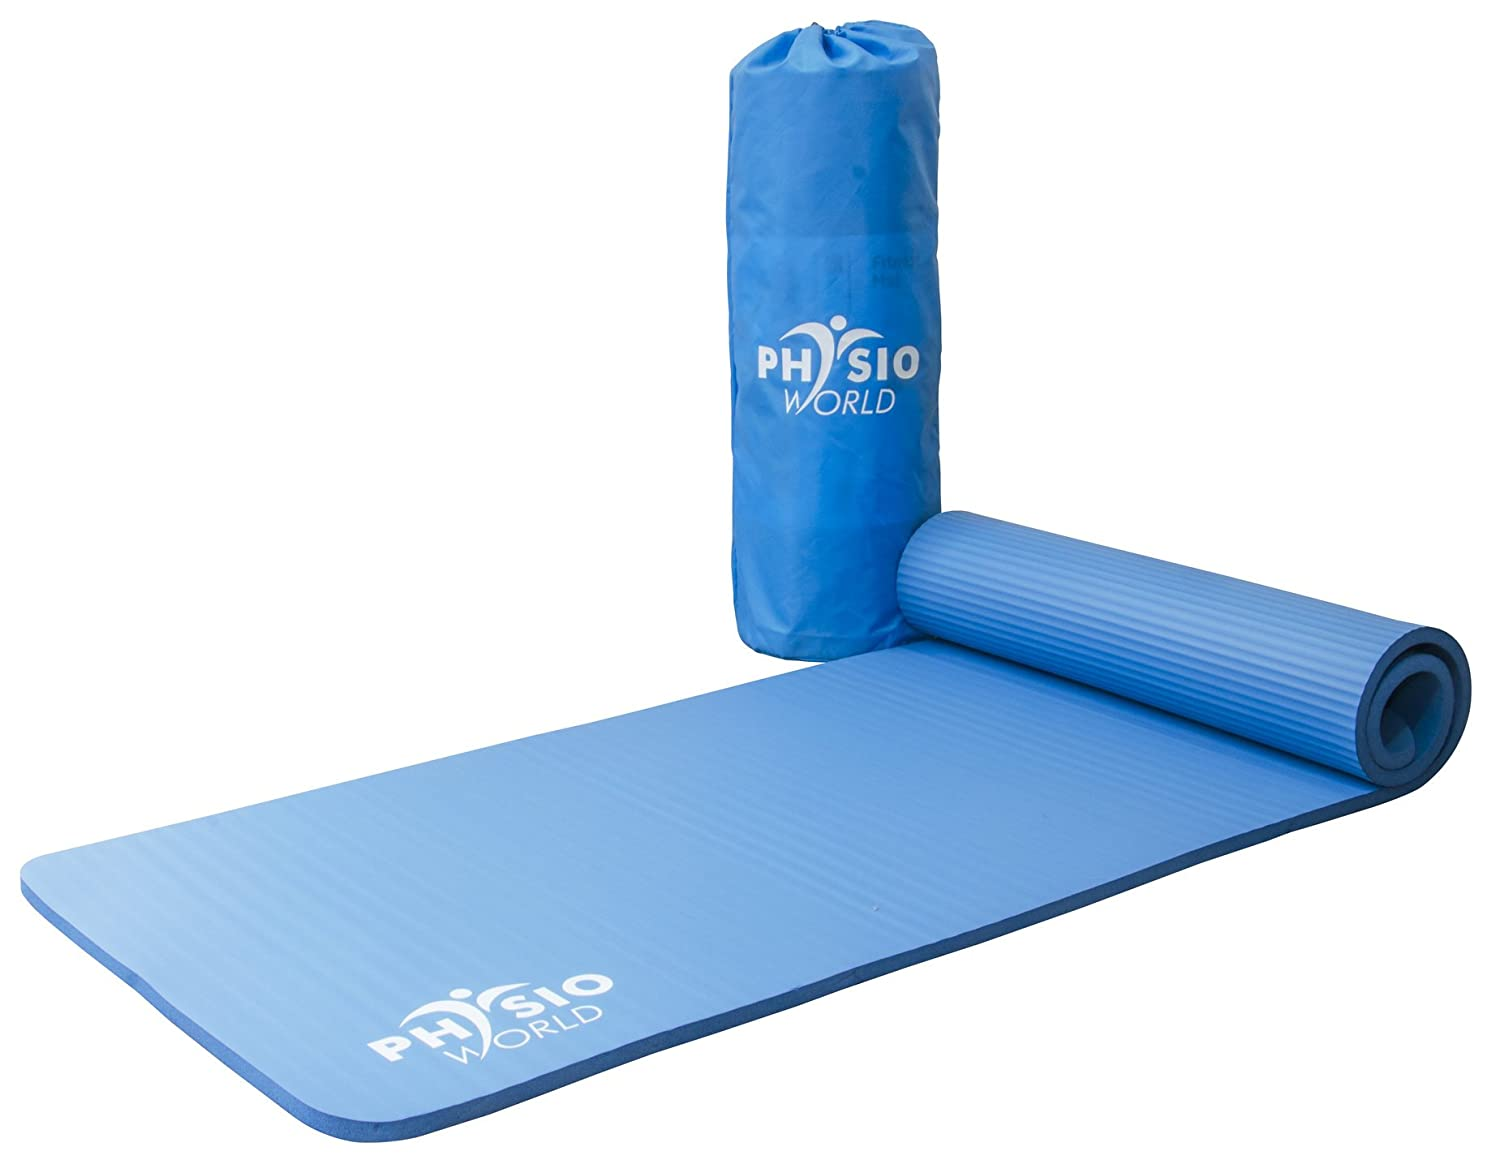 PhysioWorld Pilates Kit – Spezielle Bundle bieten